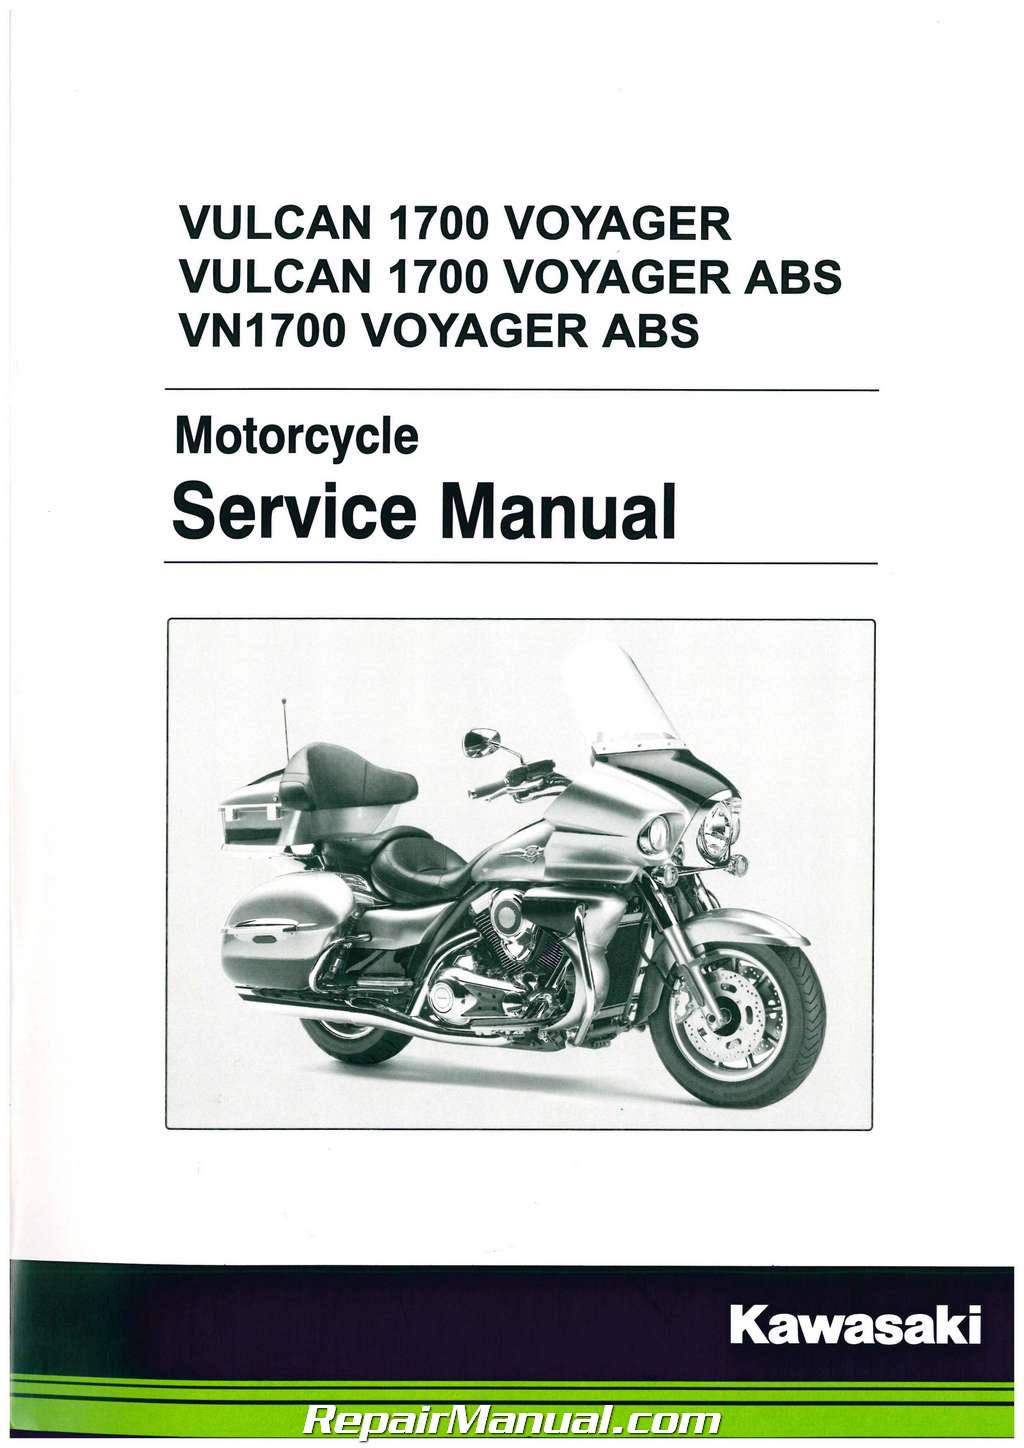 Manual Service Vn 1700 on